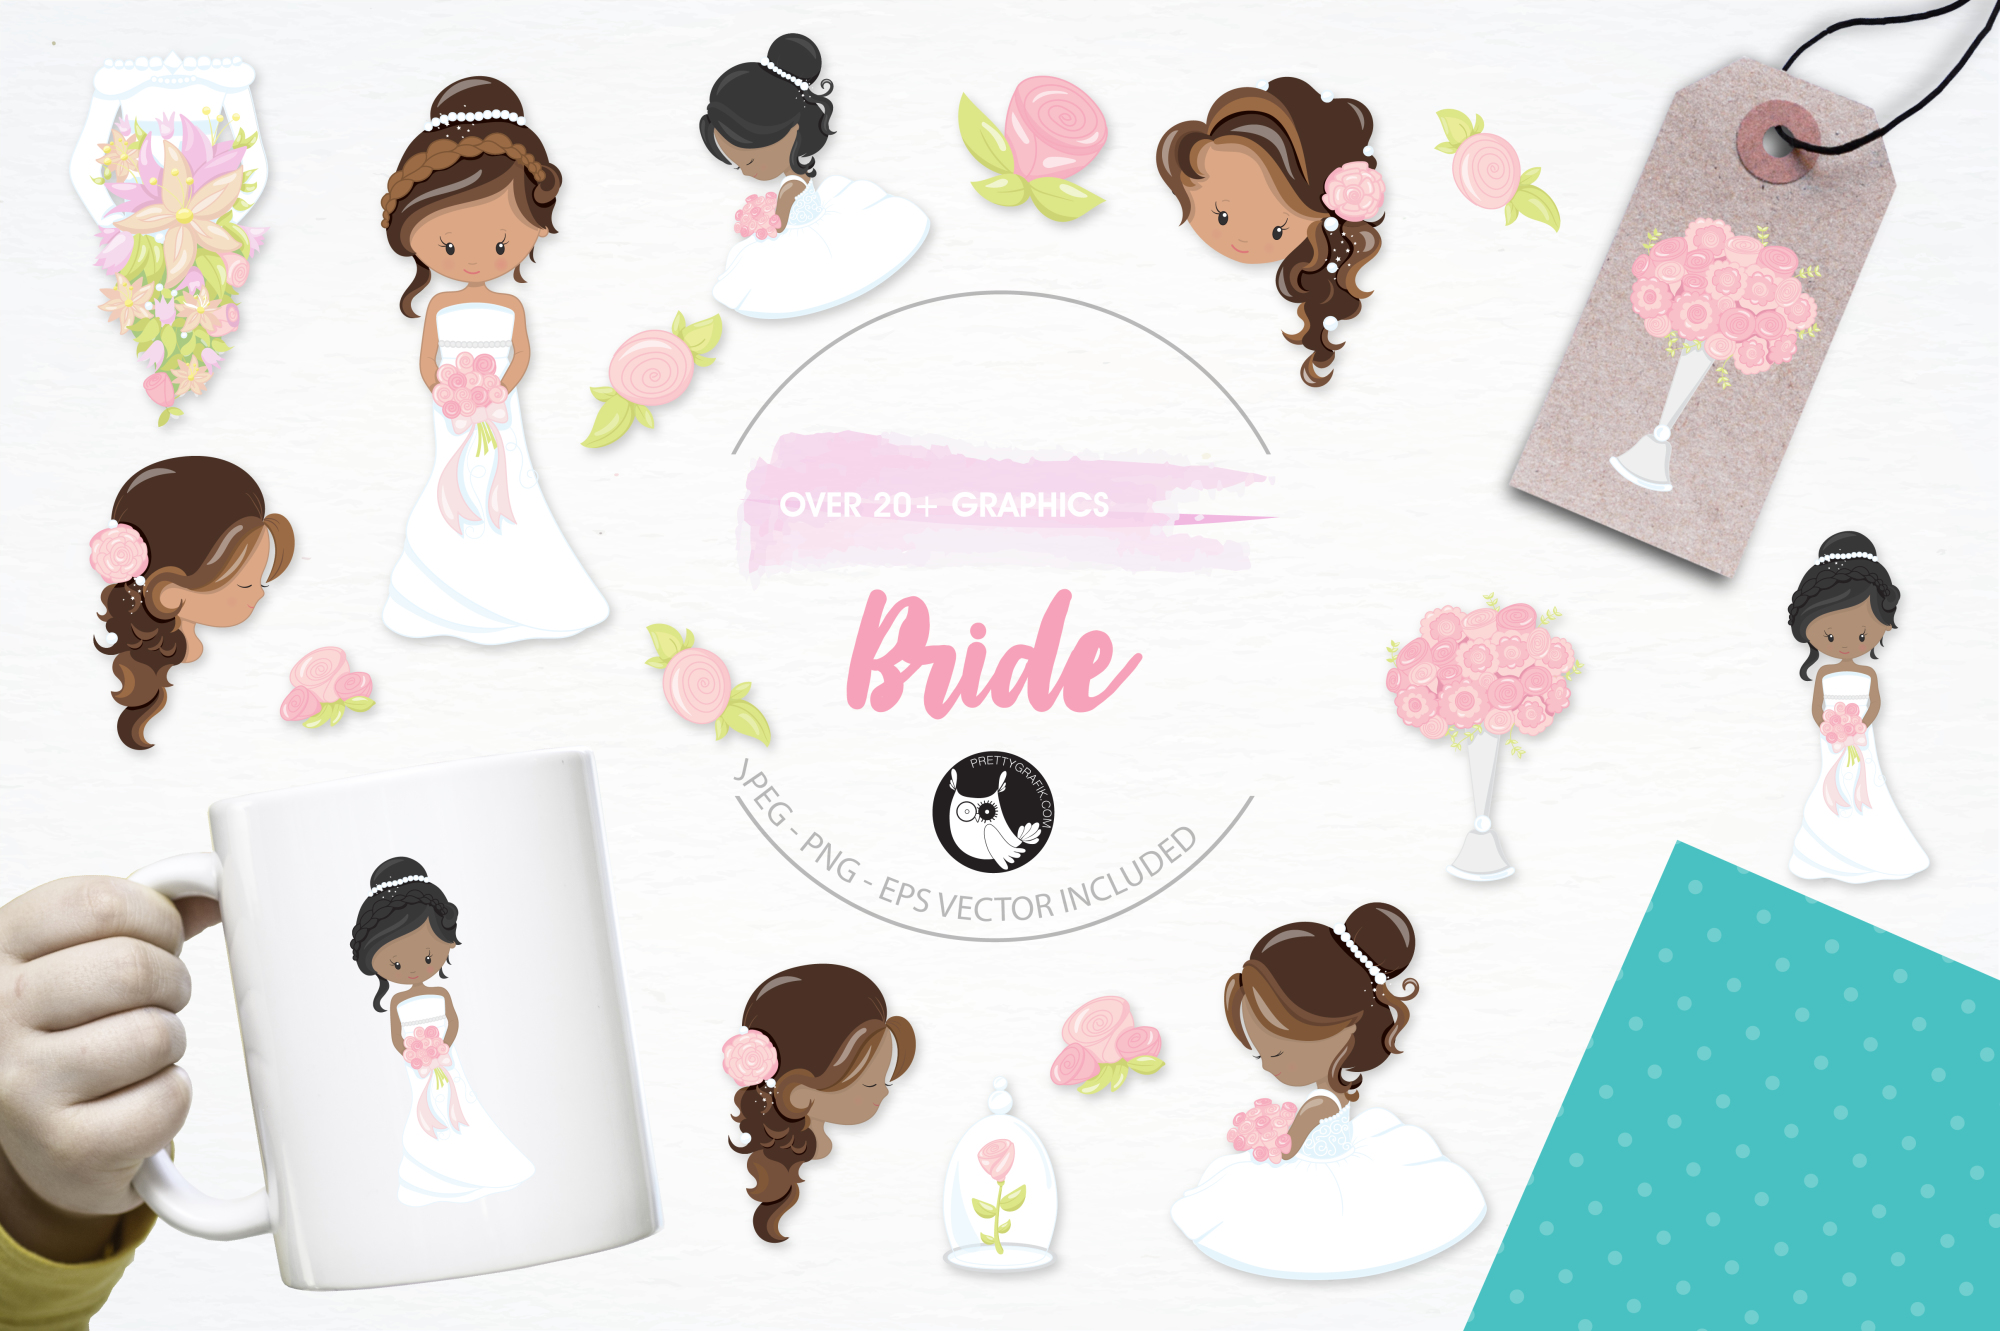 Bride  graphics and illustrations example image 1